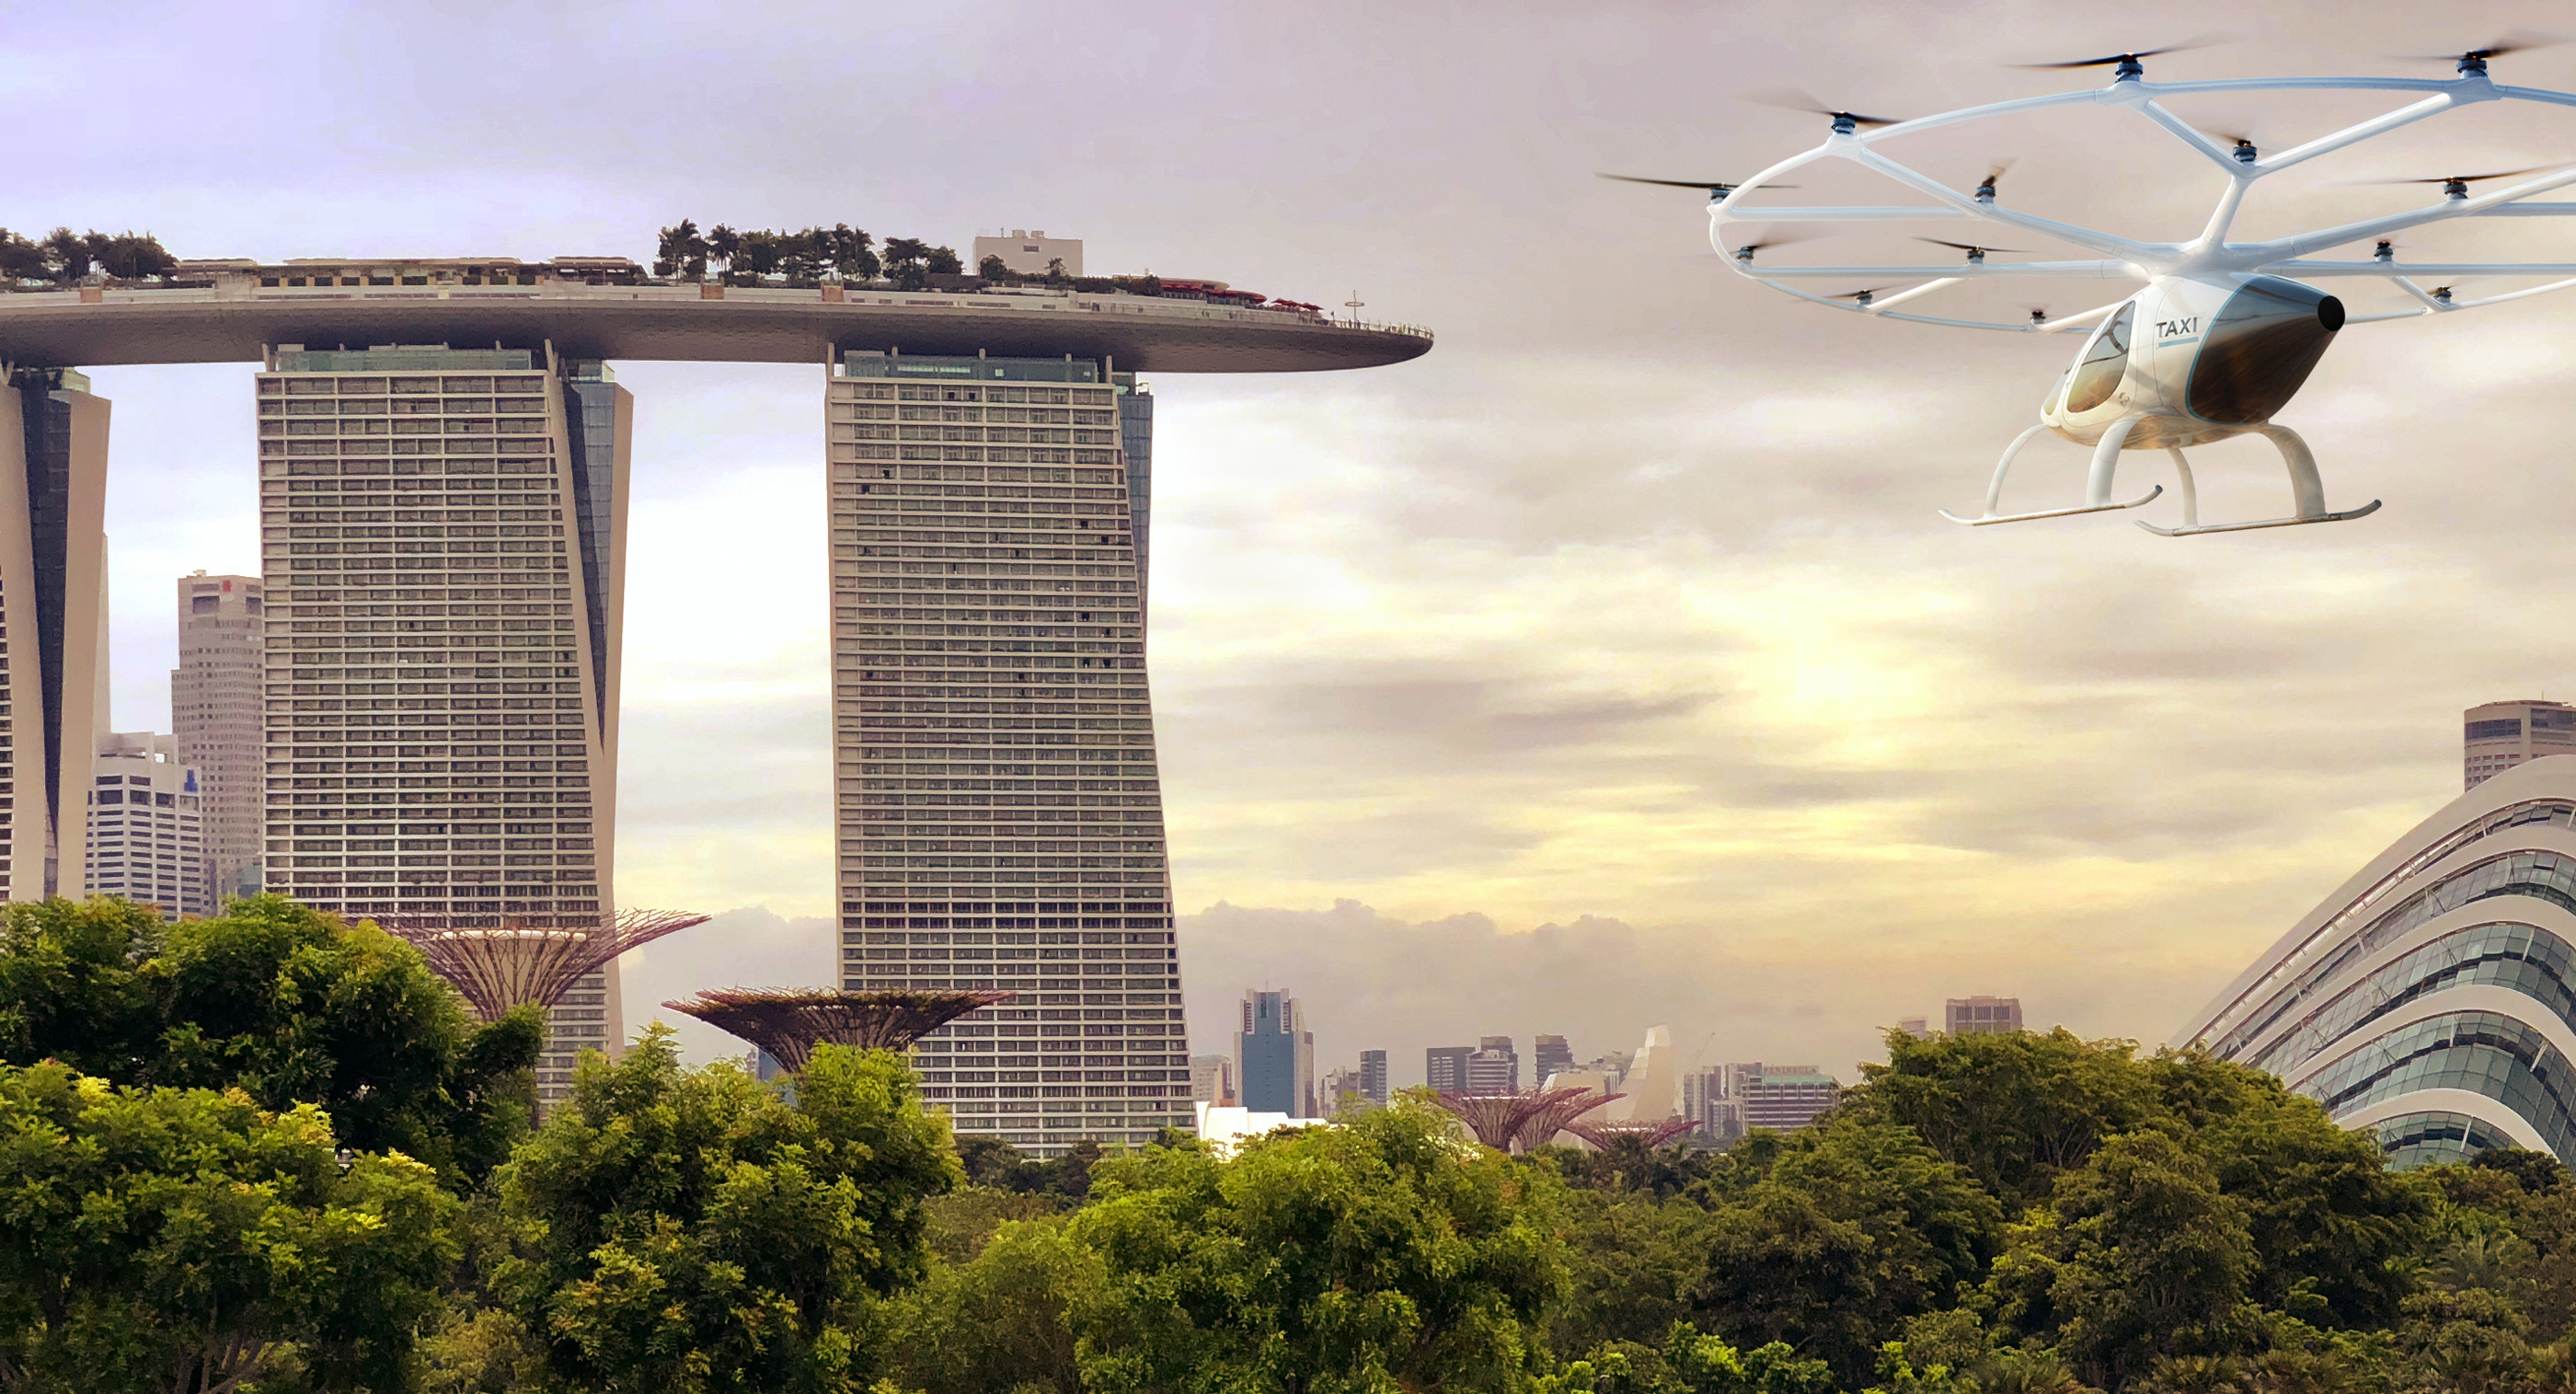 Volocopter eVTOL in Singapore